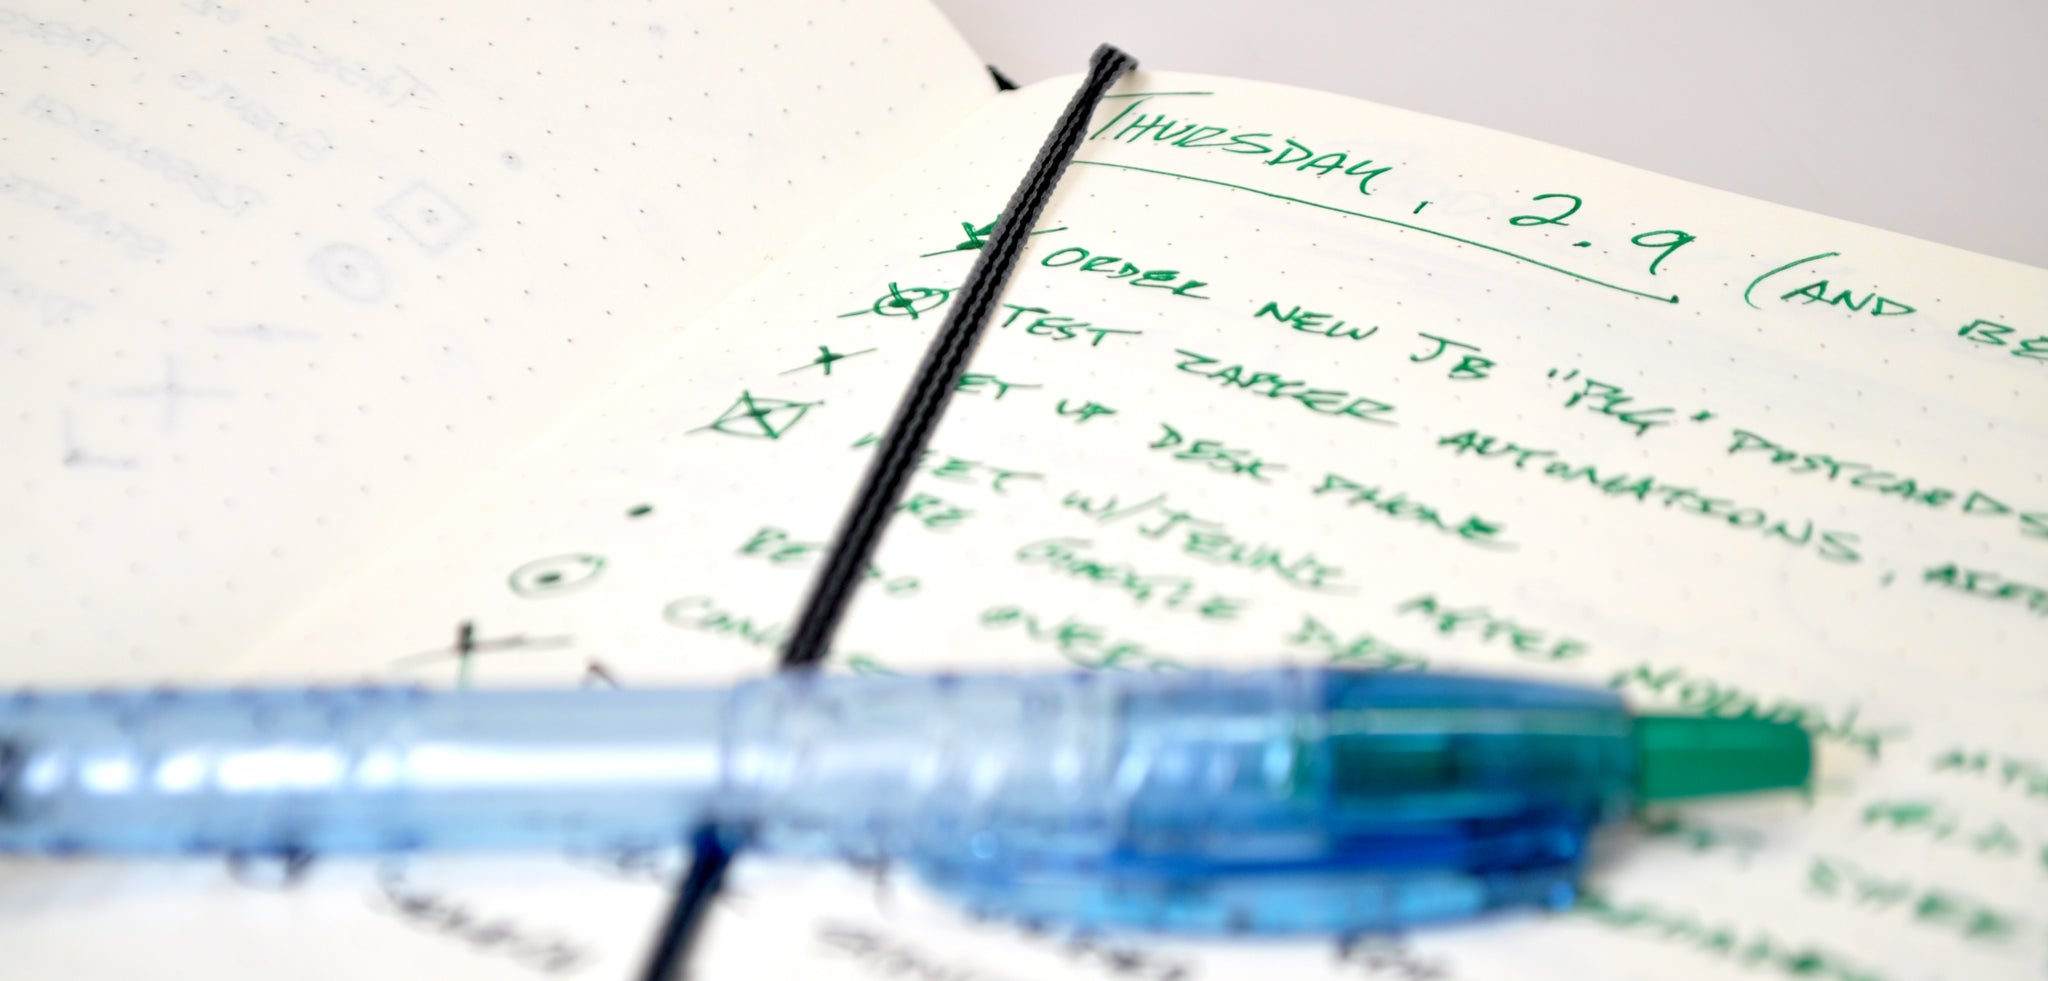 pocket-size journal daily to do list